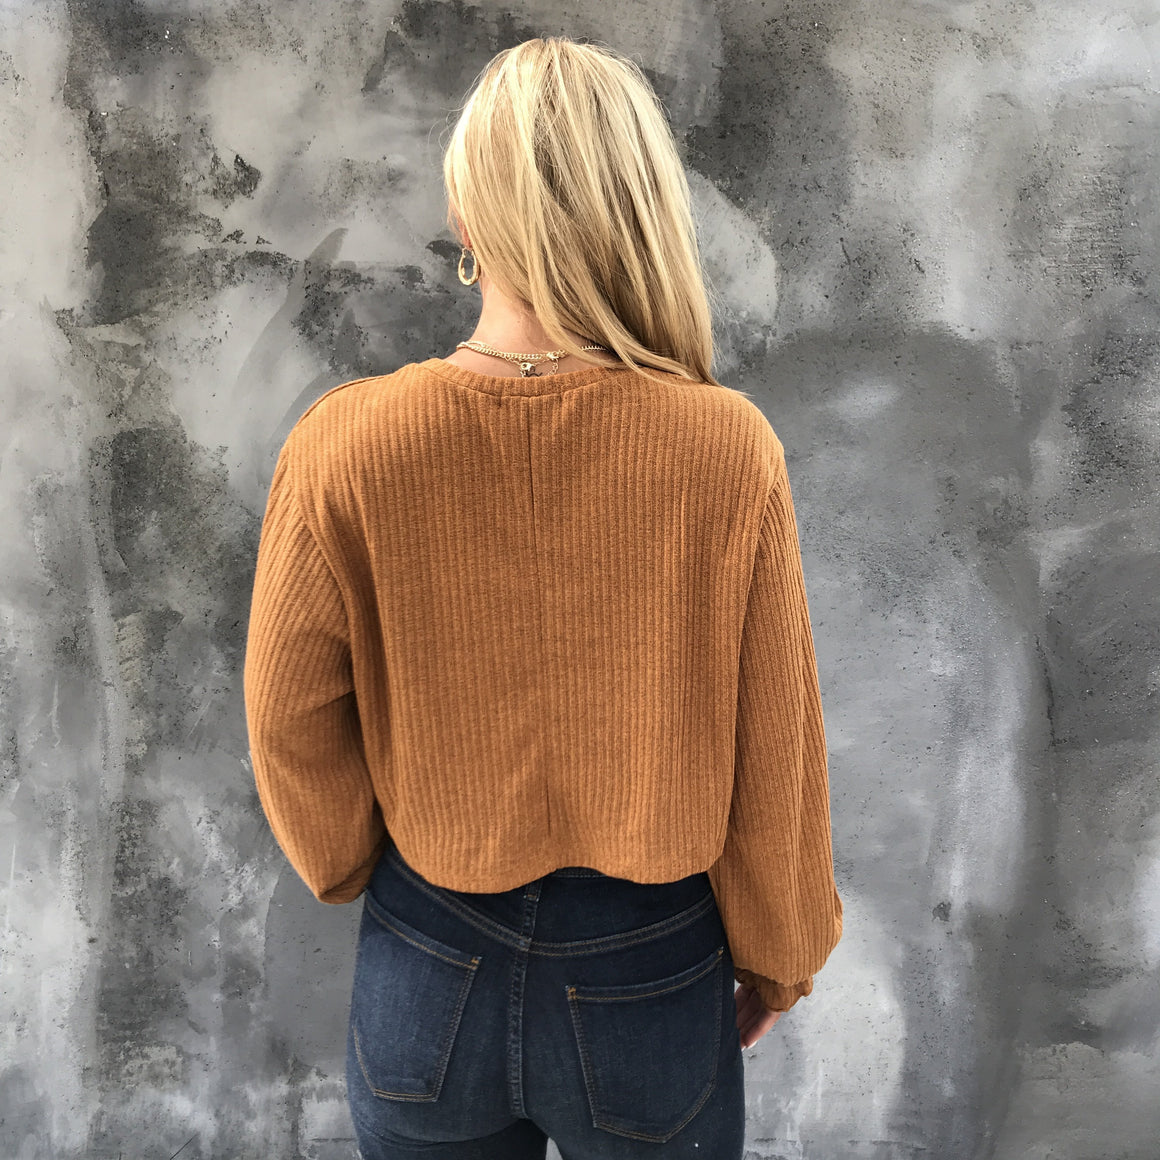 Pumpkin Spice Long Sleeve Knit Top